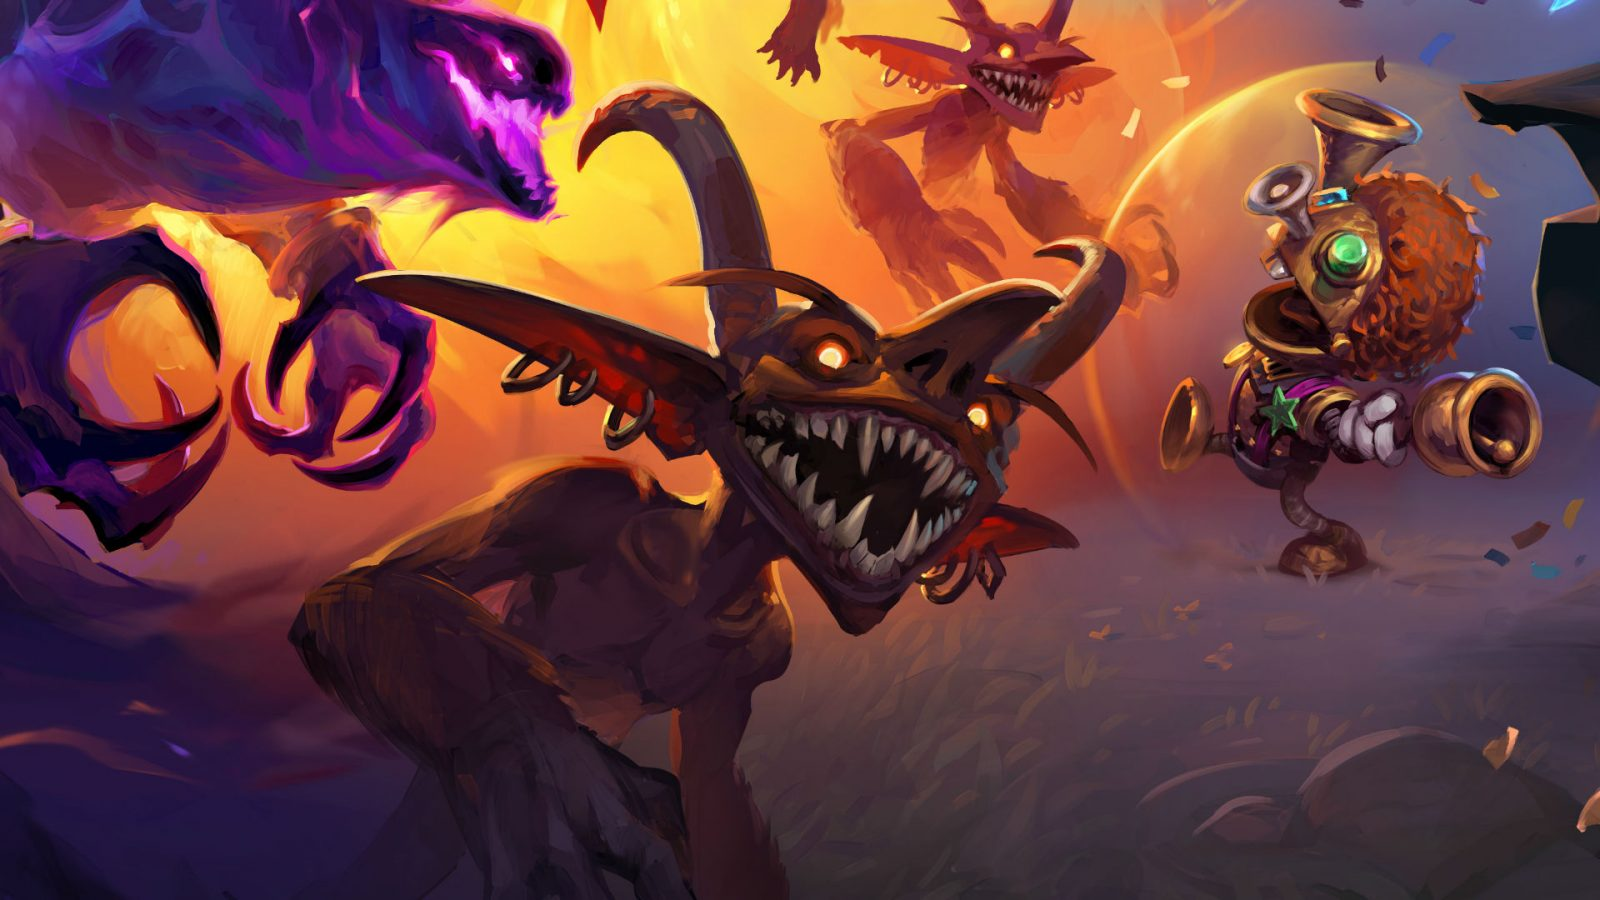 Hearthstone Battlegrounds' new heroes available now, but others have been removed